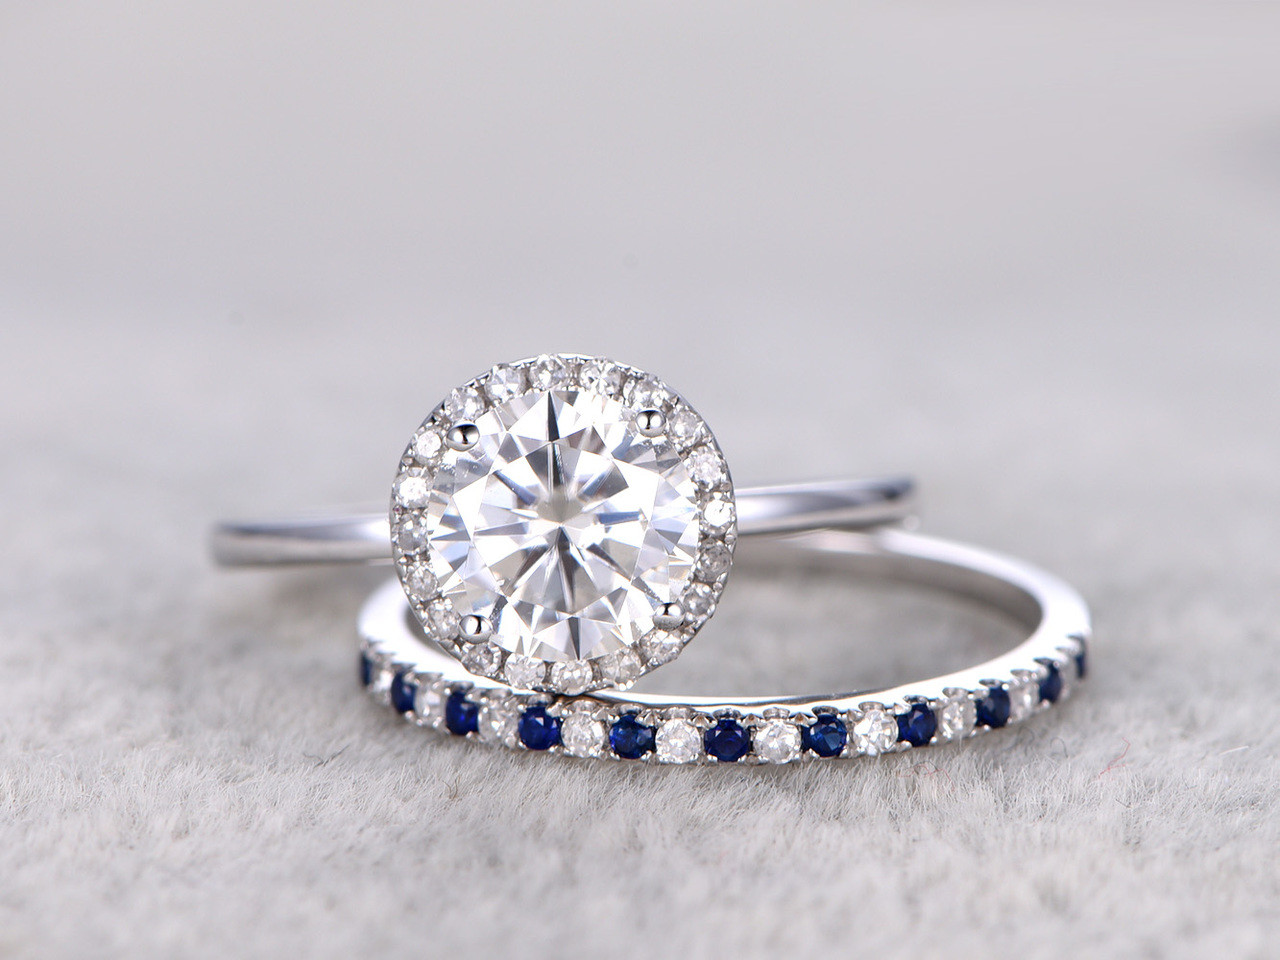 milgrain created on white collections special silver sapphire ring engagement sterling sale set big products wedding